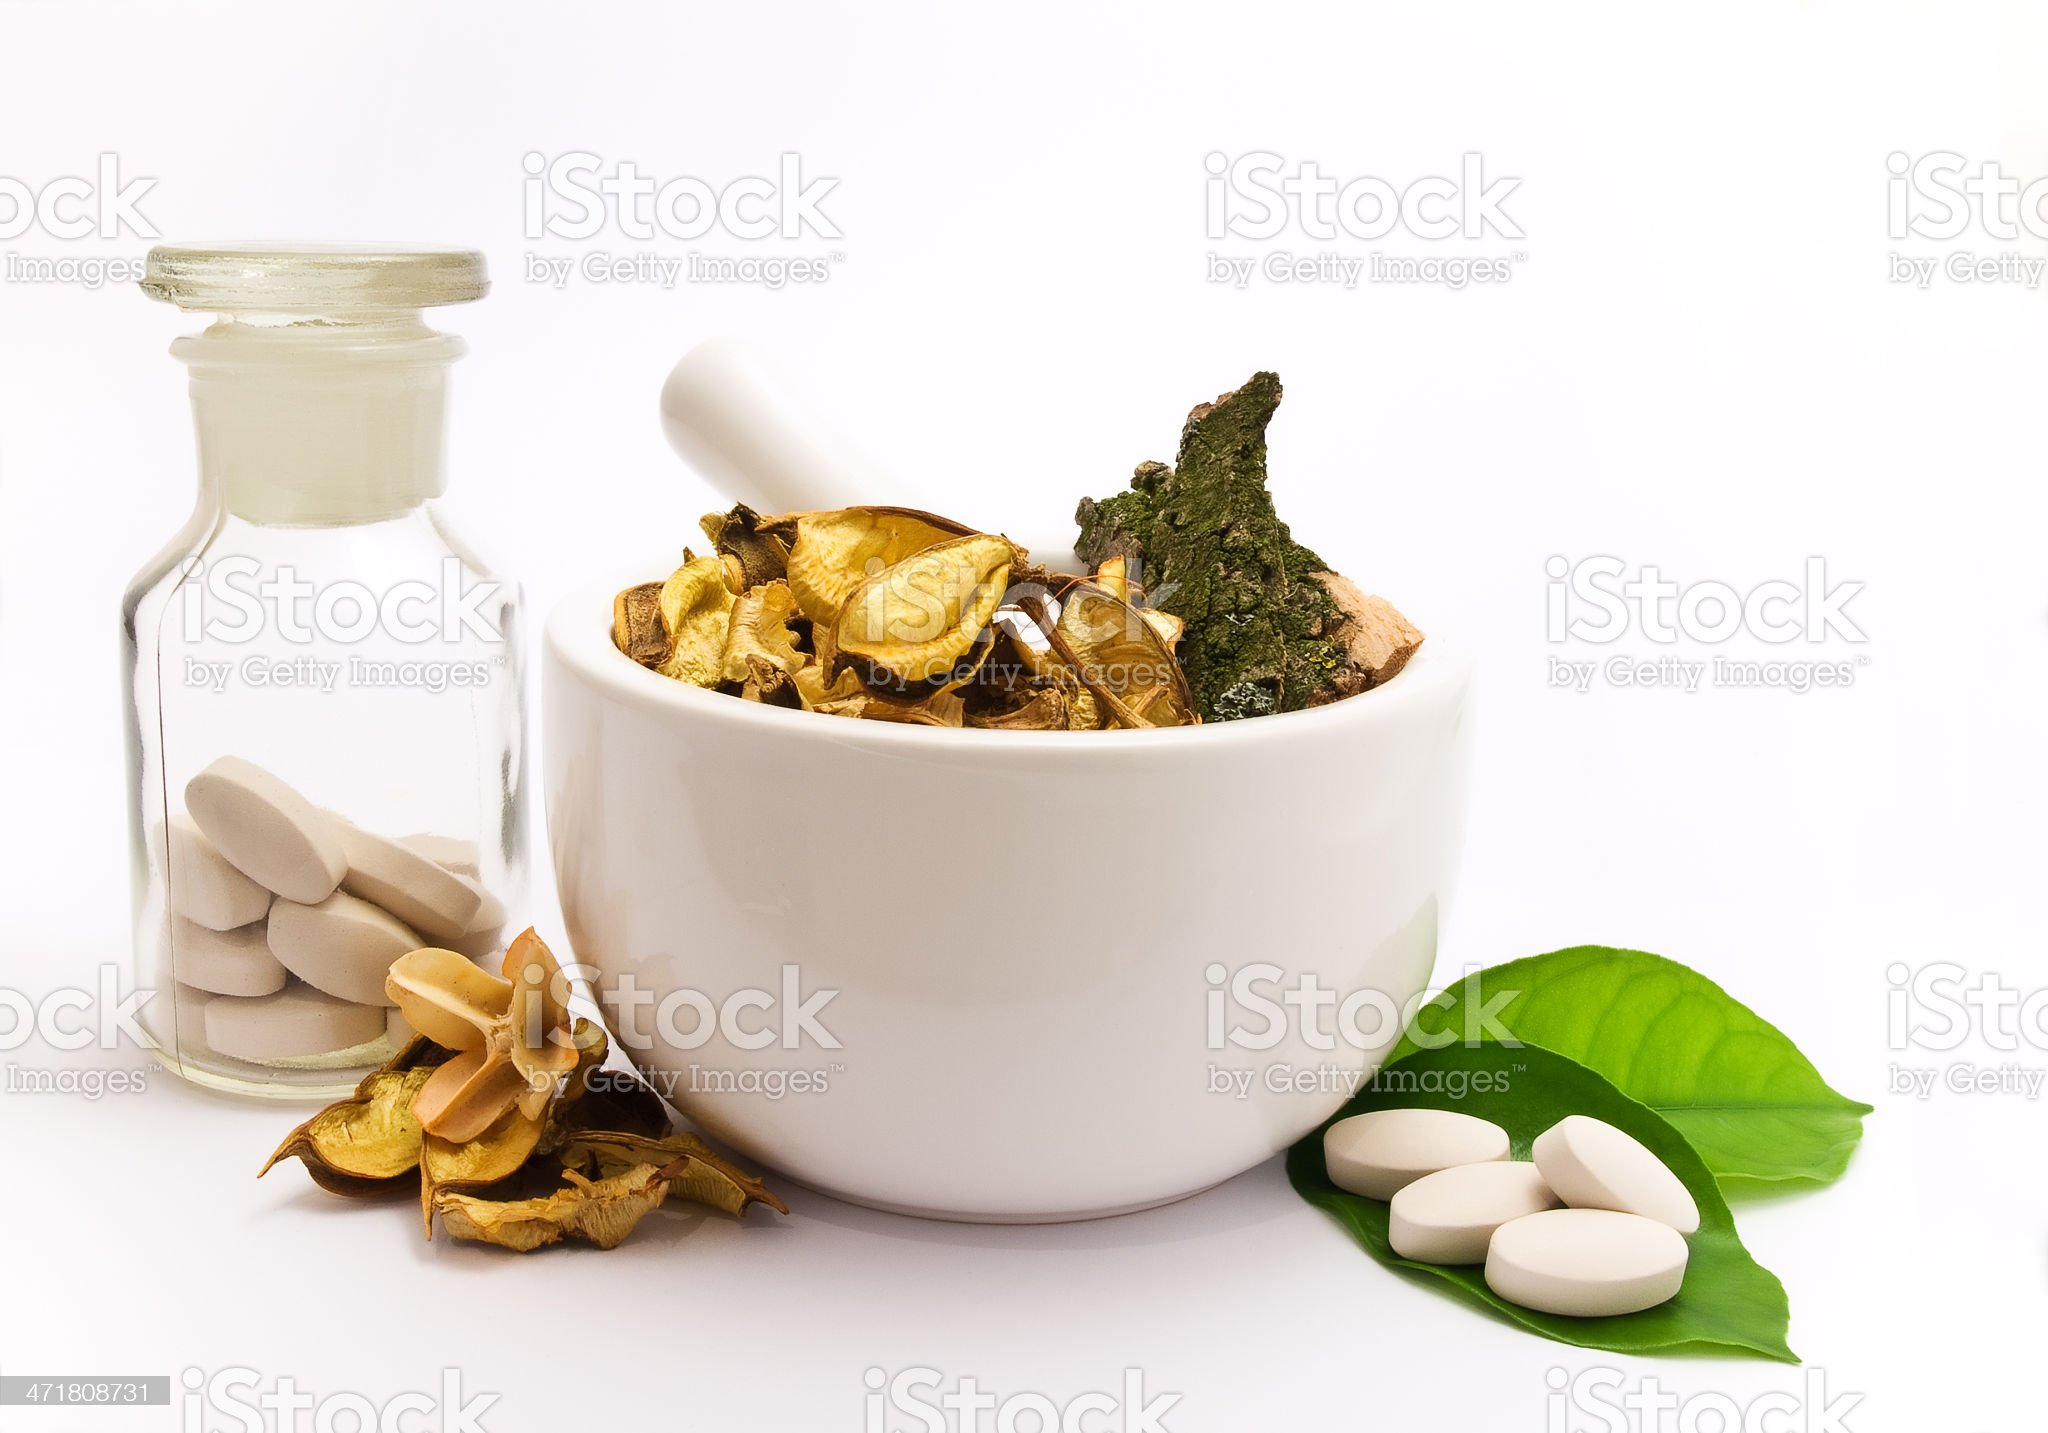 Pestle, herbs and pharmacy bottle. royalty-free stock photo